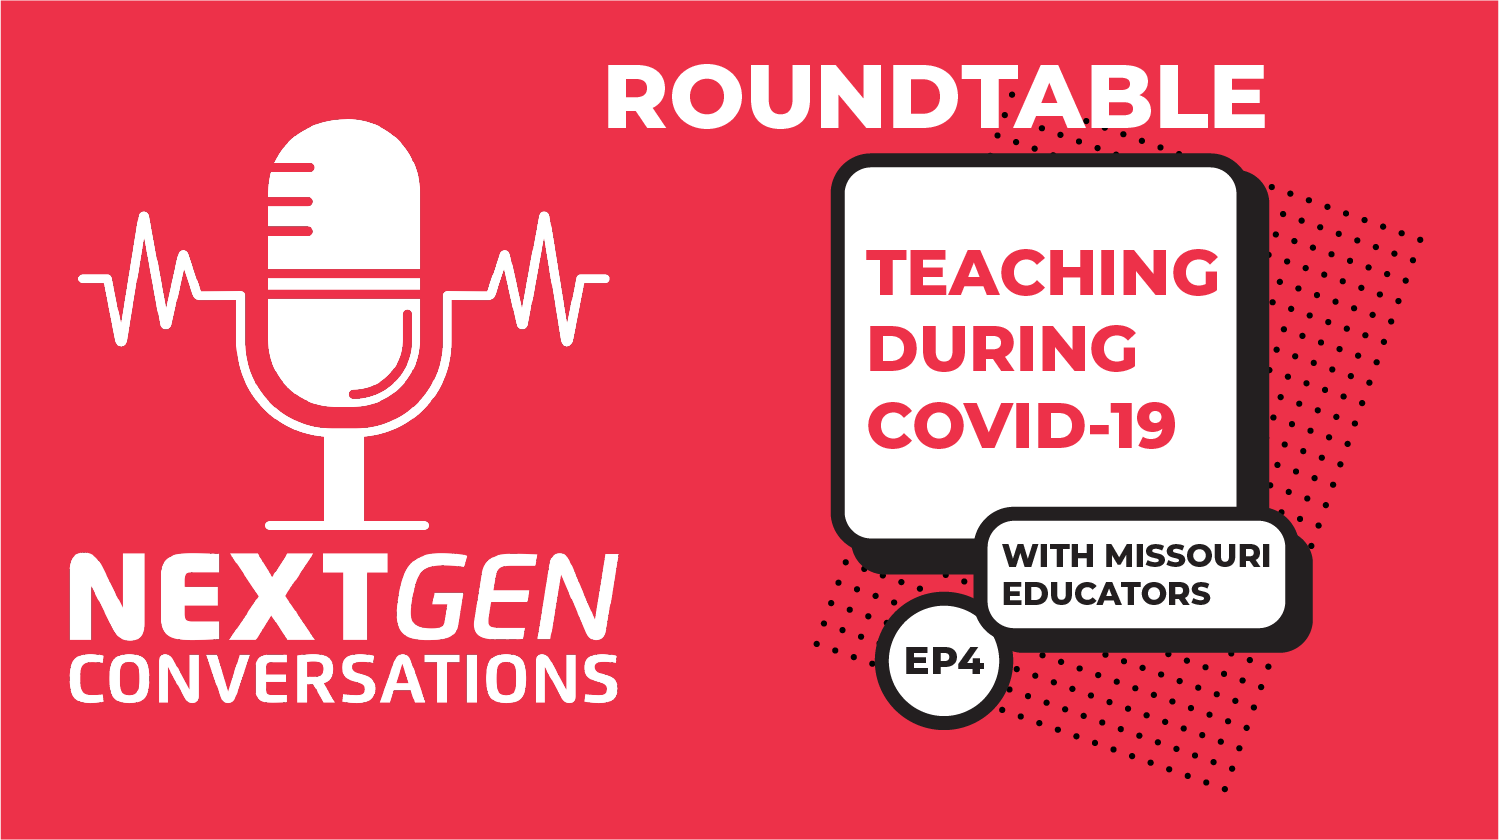 NextGen Conversations: Teaching During COVID-19